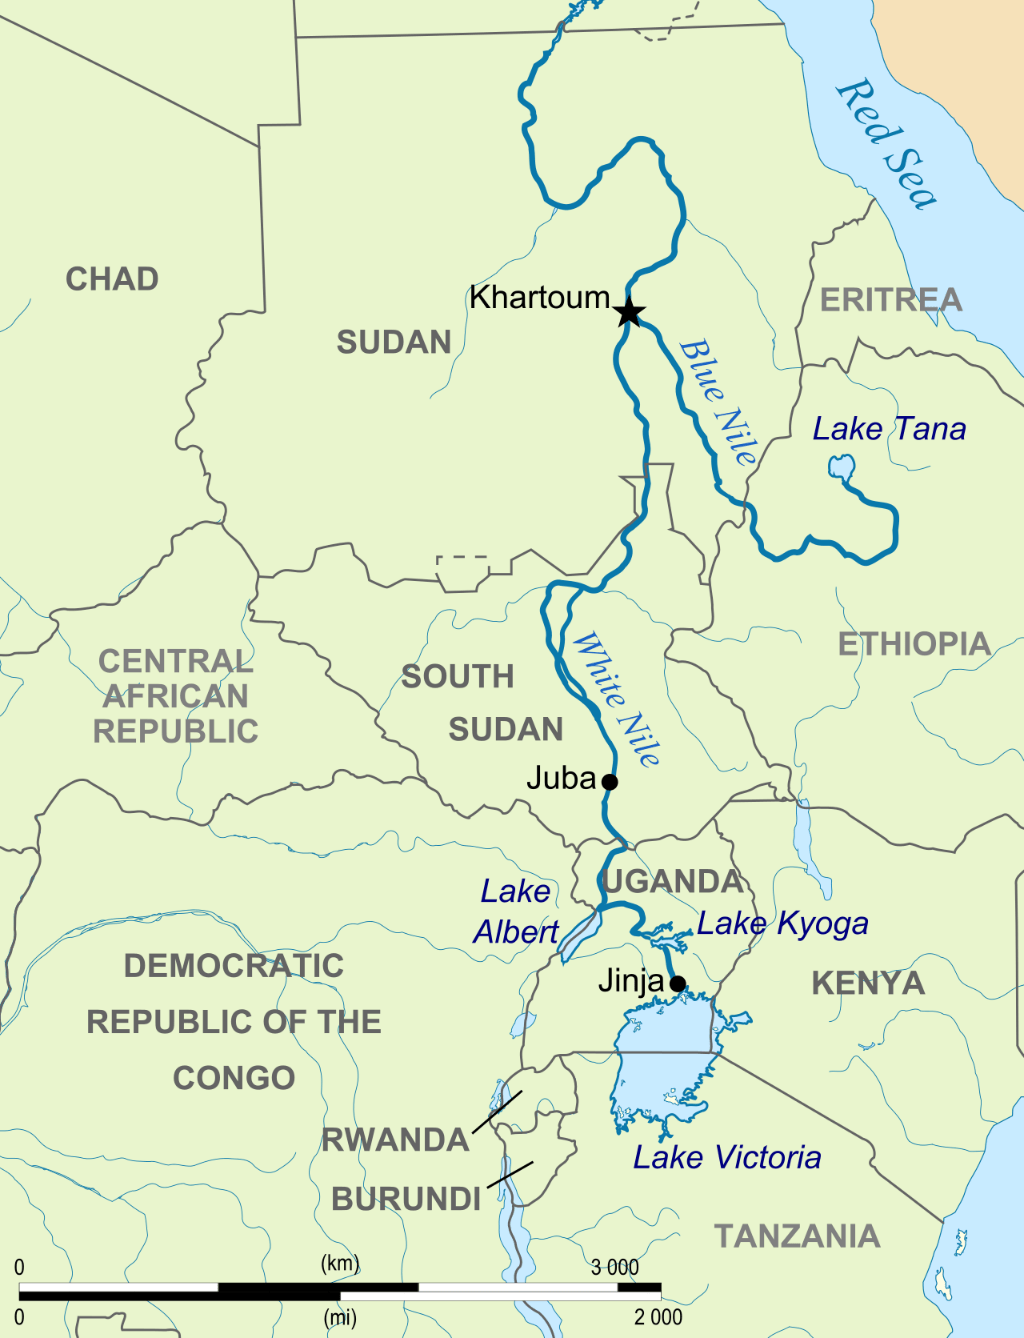 https://upload.wikimedia.org/wikipedia/commons/thumb/2/2b/White_and_Blue_Nile-en.svg/1280px-White_and_Blue_Nile-en.svg.png